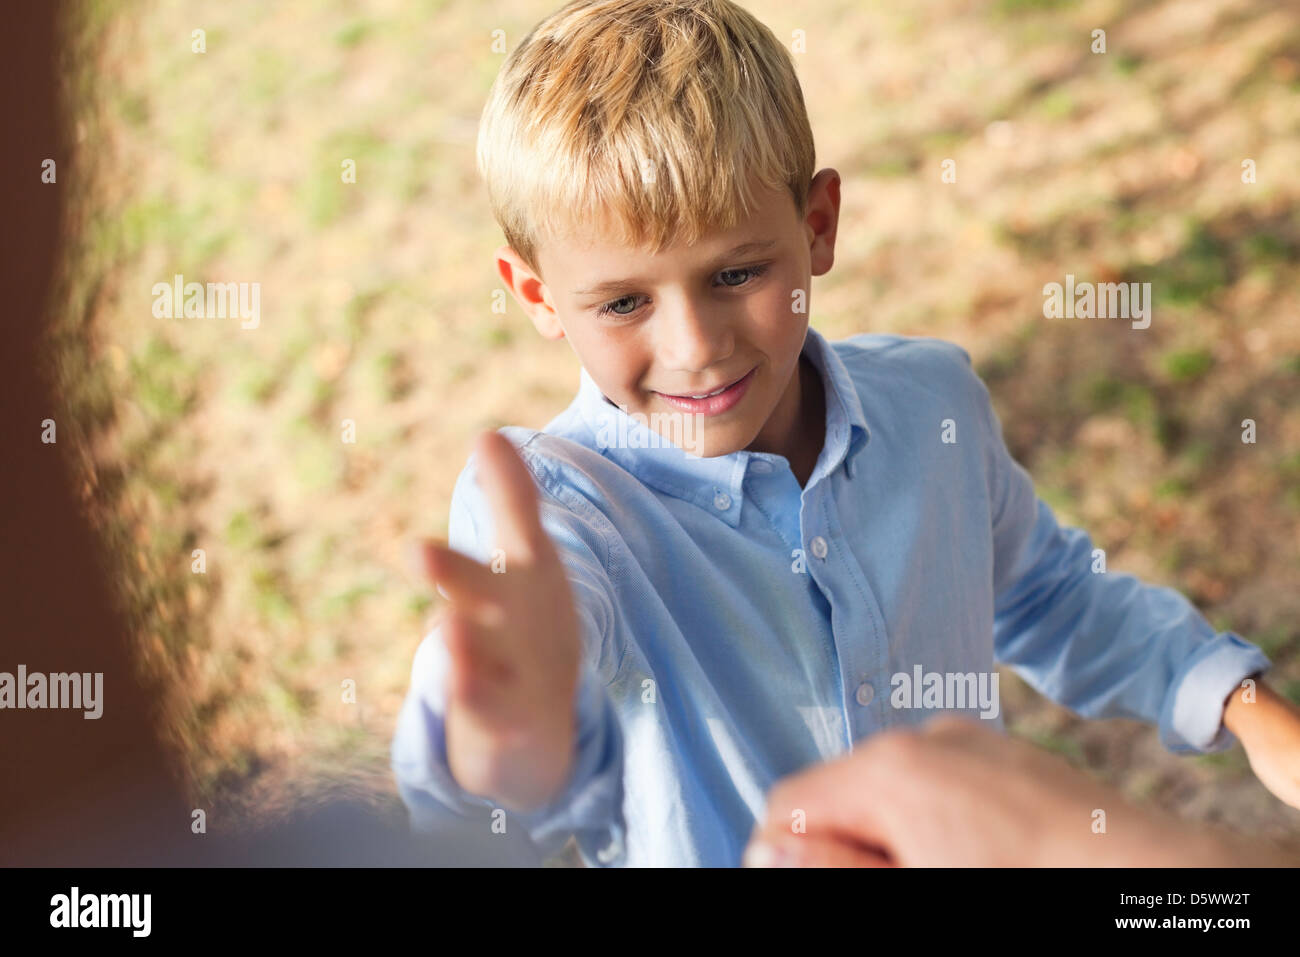 Father and son high fiving outdoors - Stock Image